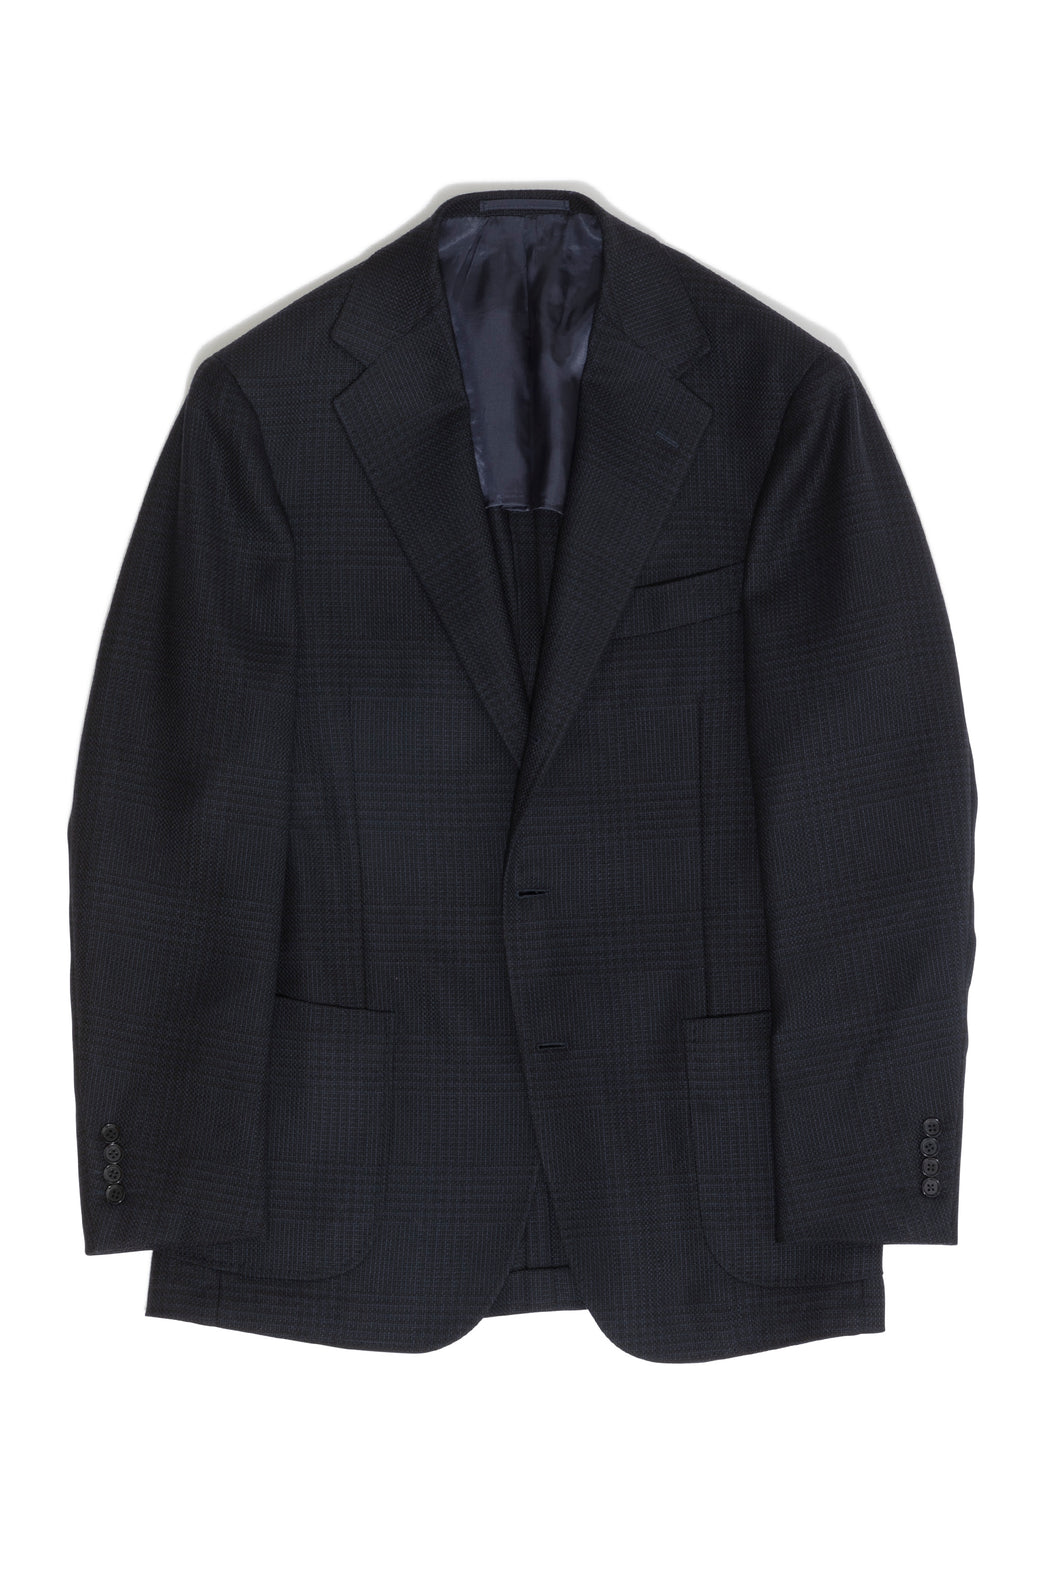 Ring Jacket - Tonal Prince of Wales